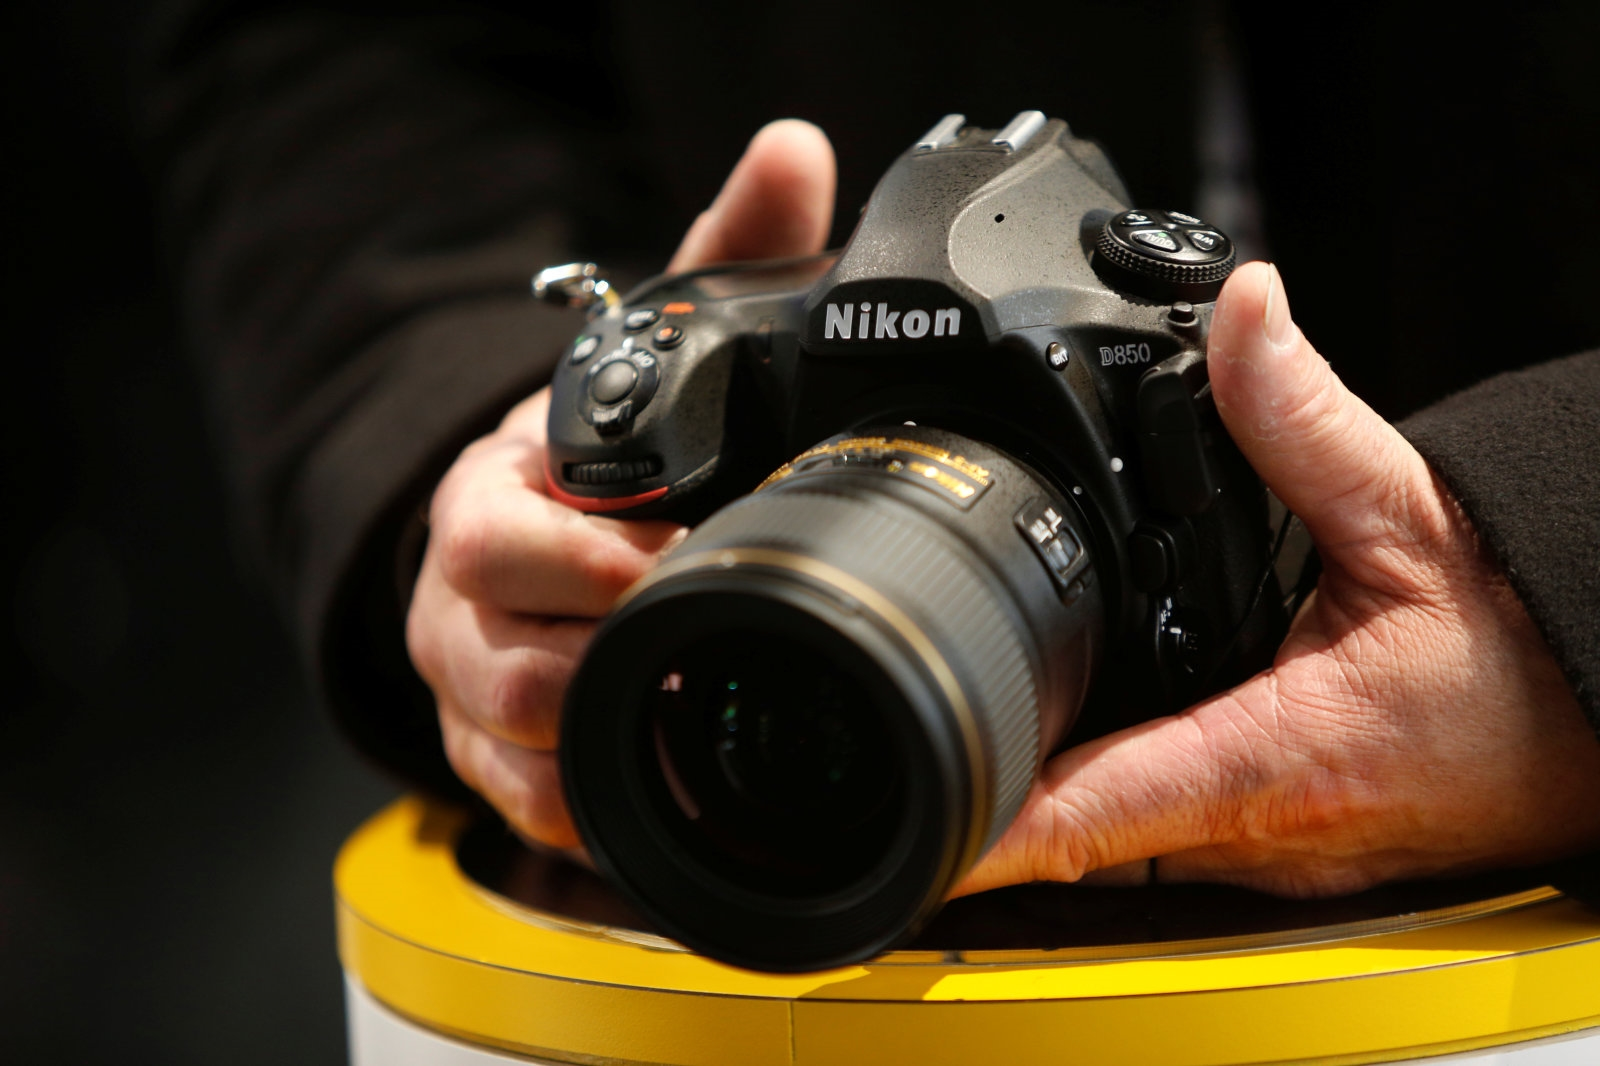 Nikon may release two full-frame mirrorless cameras this summer | DeviceDaily.com